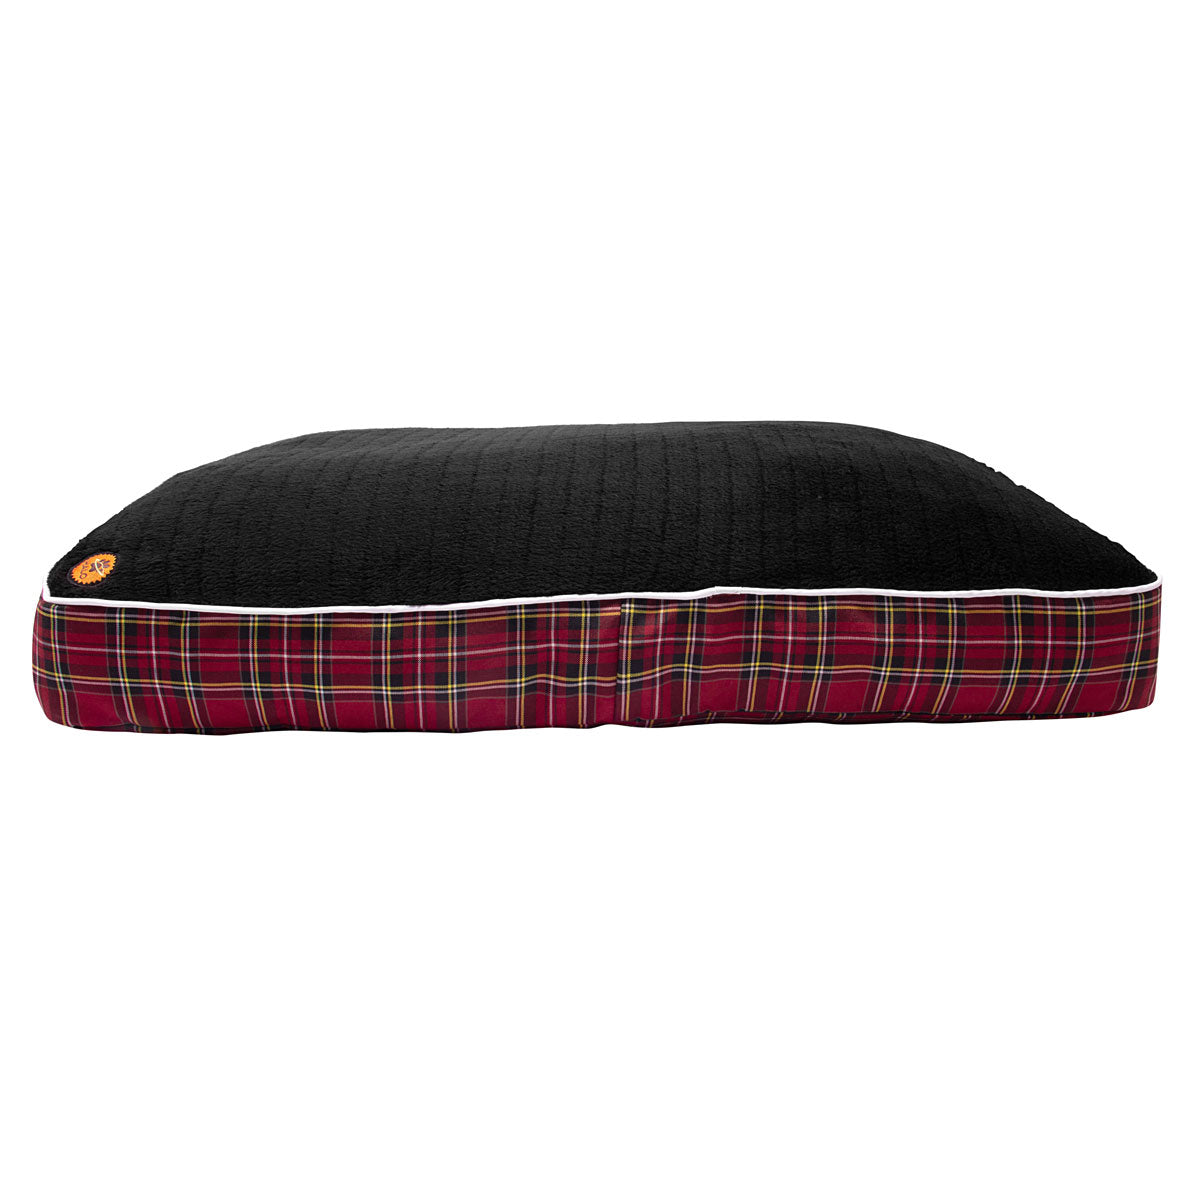 EC Red Plaid Rectangular Dog Bed - Halo - Breeches.com